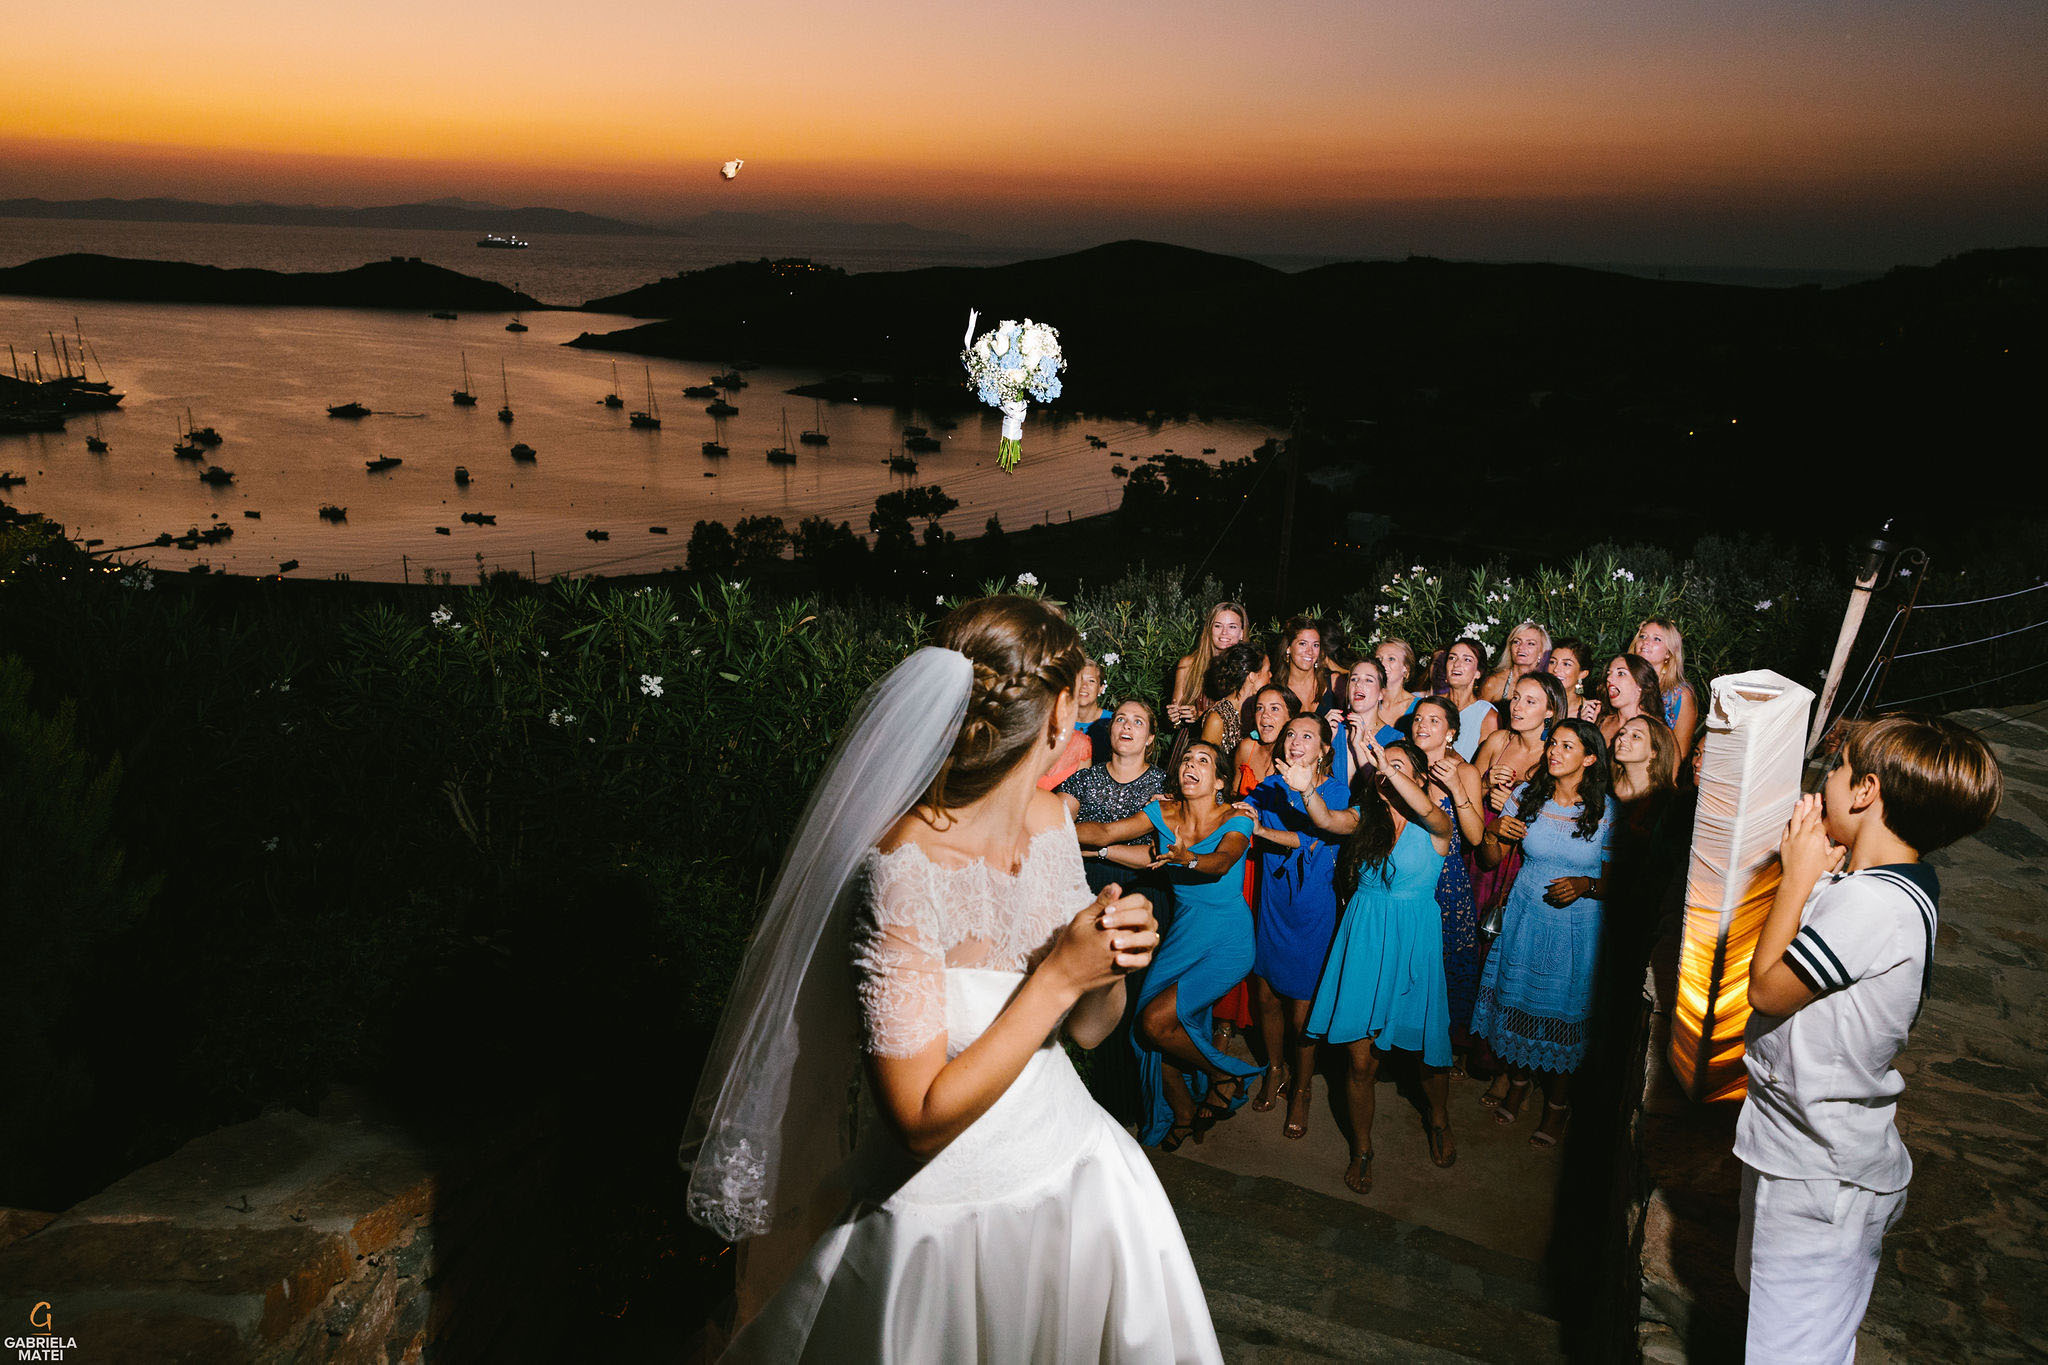 Bouquet throw at sunset with Aegean Sea in the background